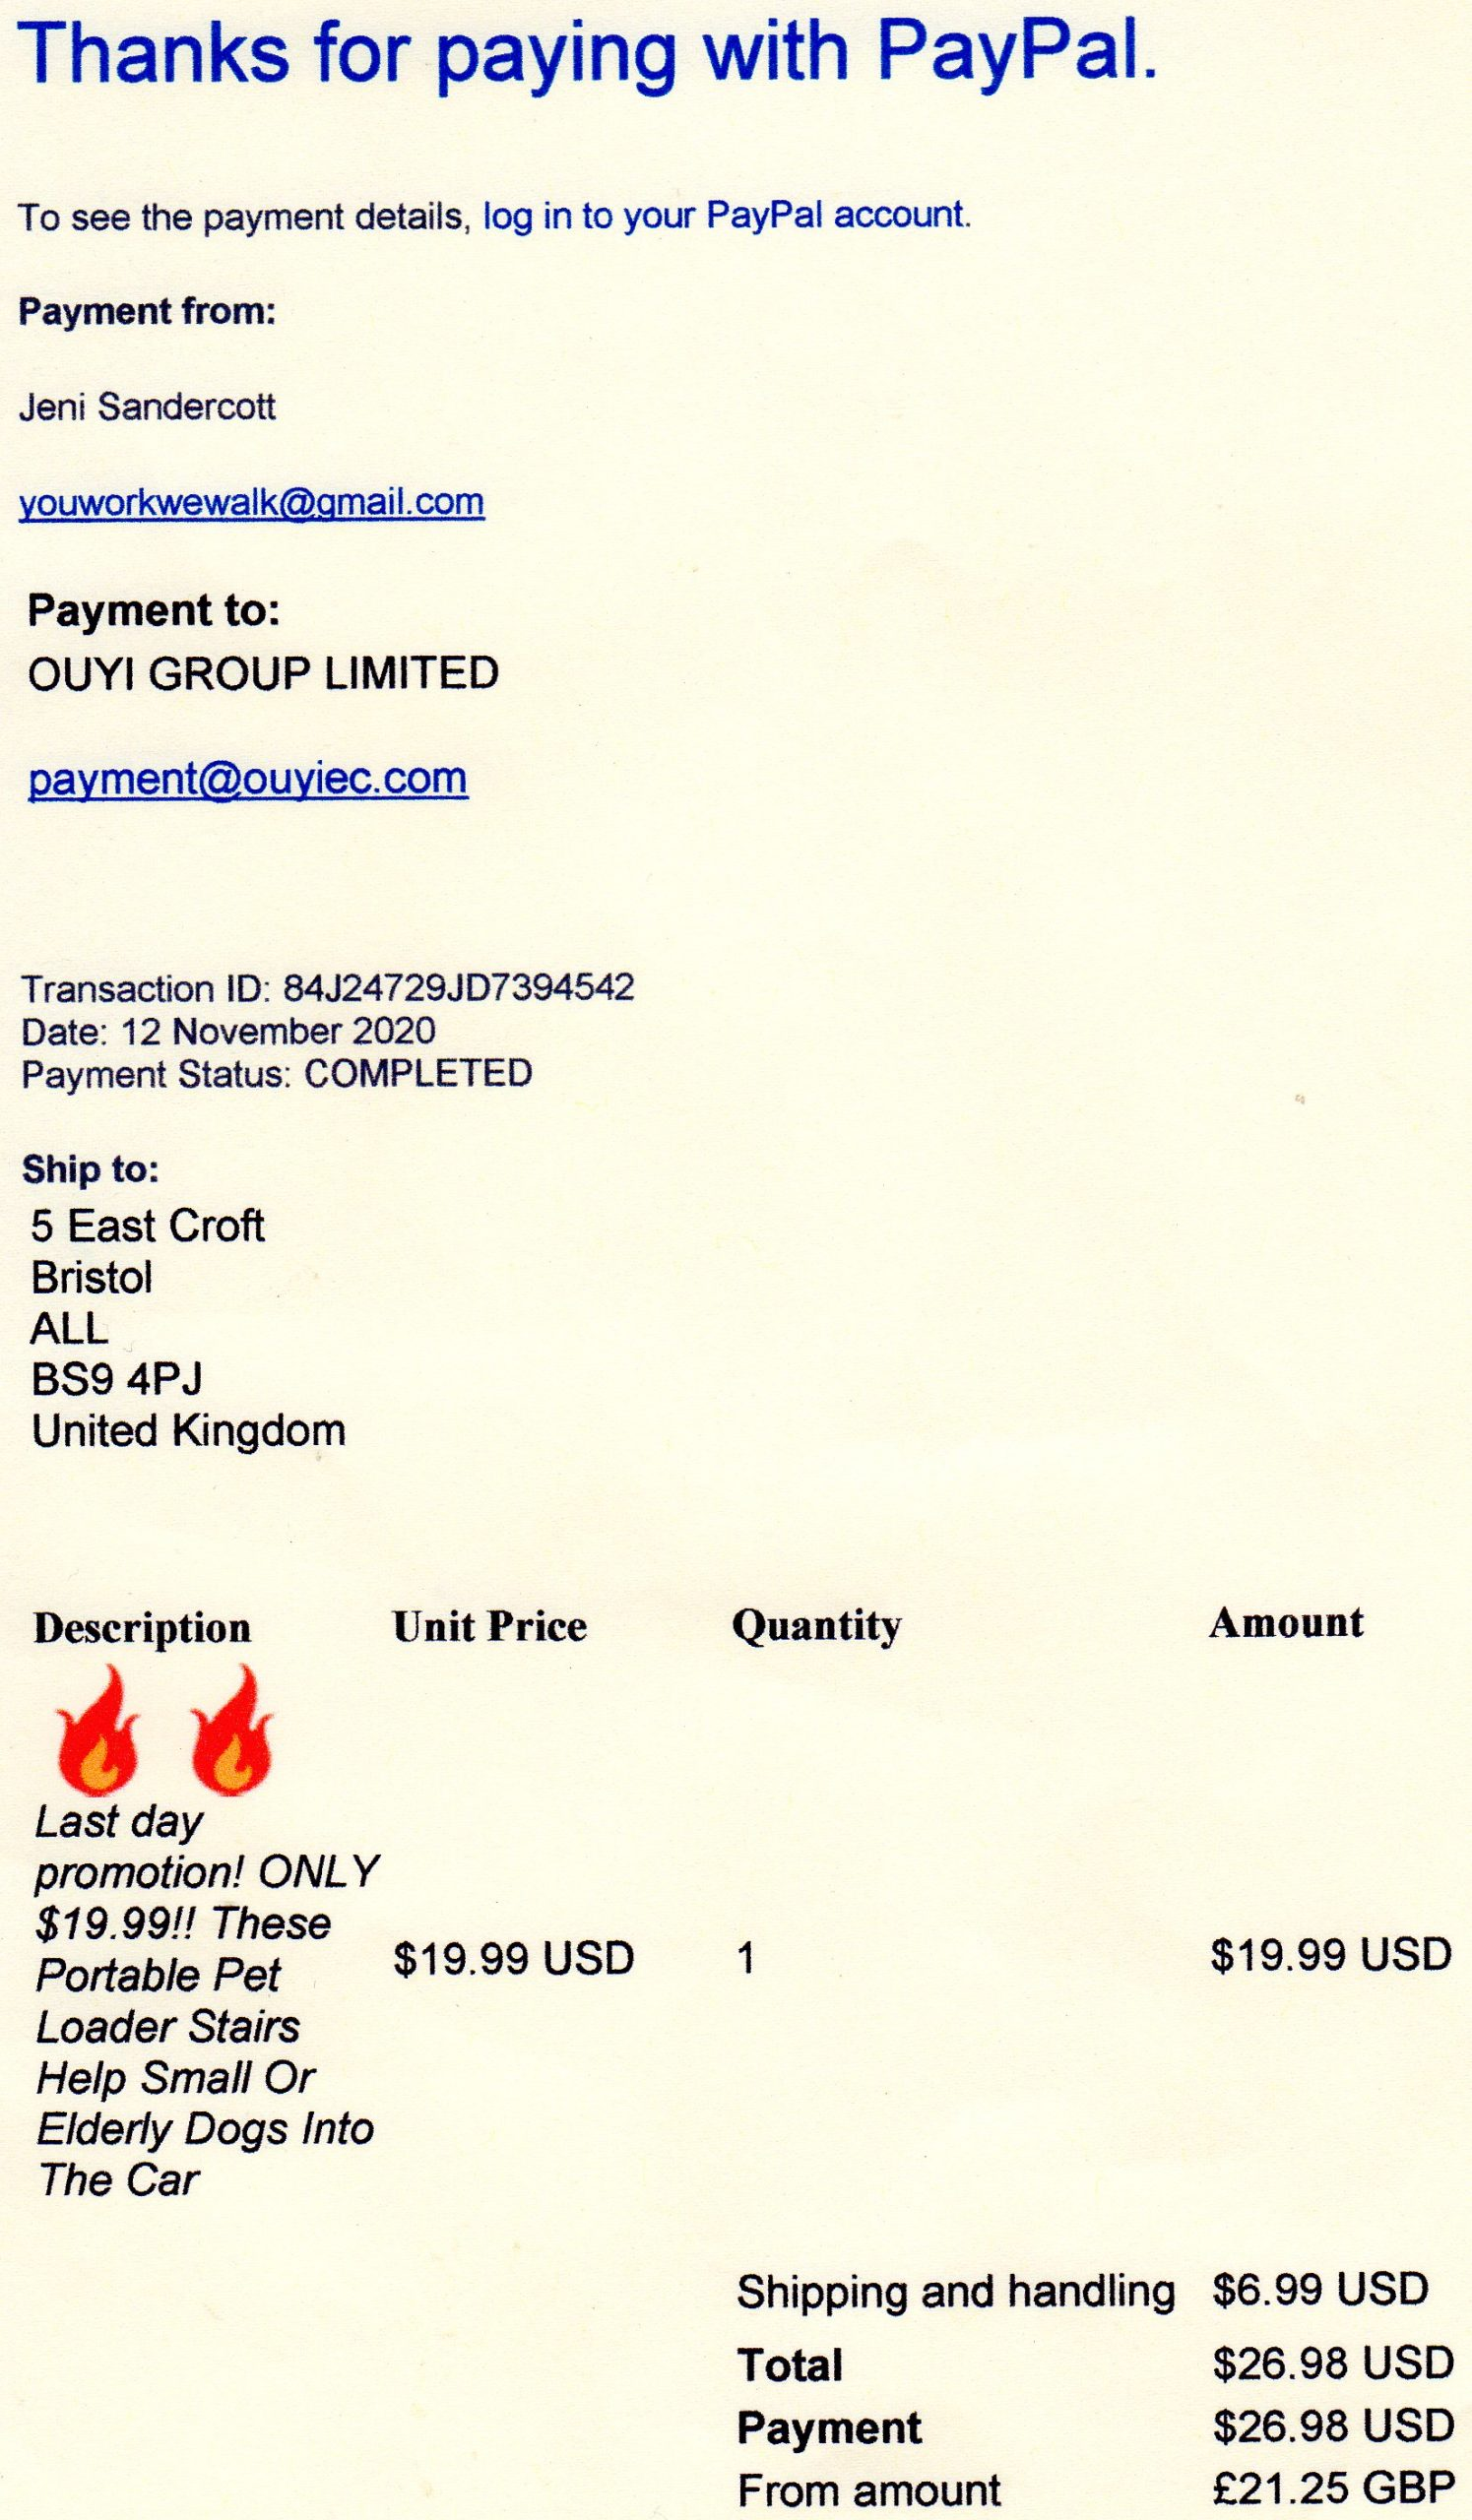 Order and paid for months ago 11th November